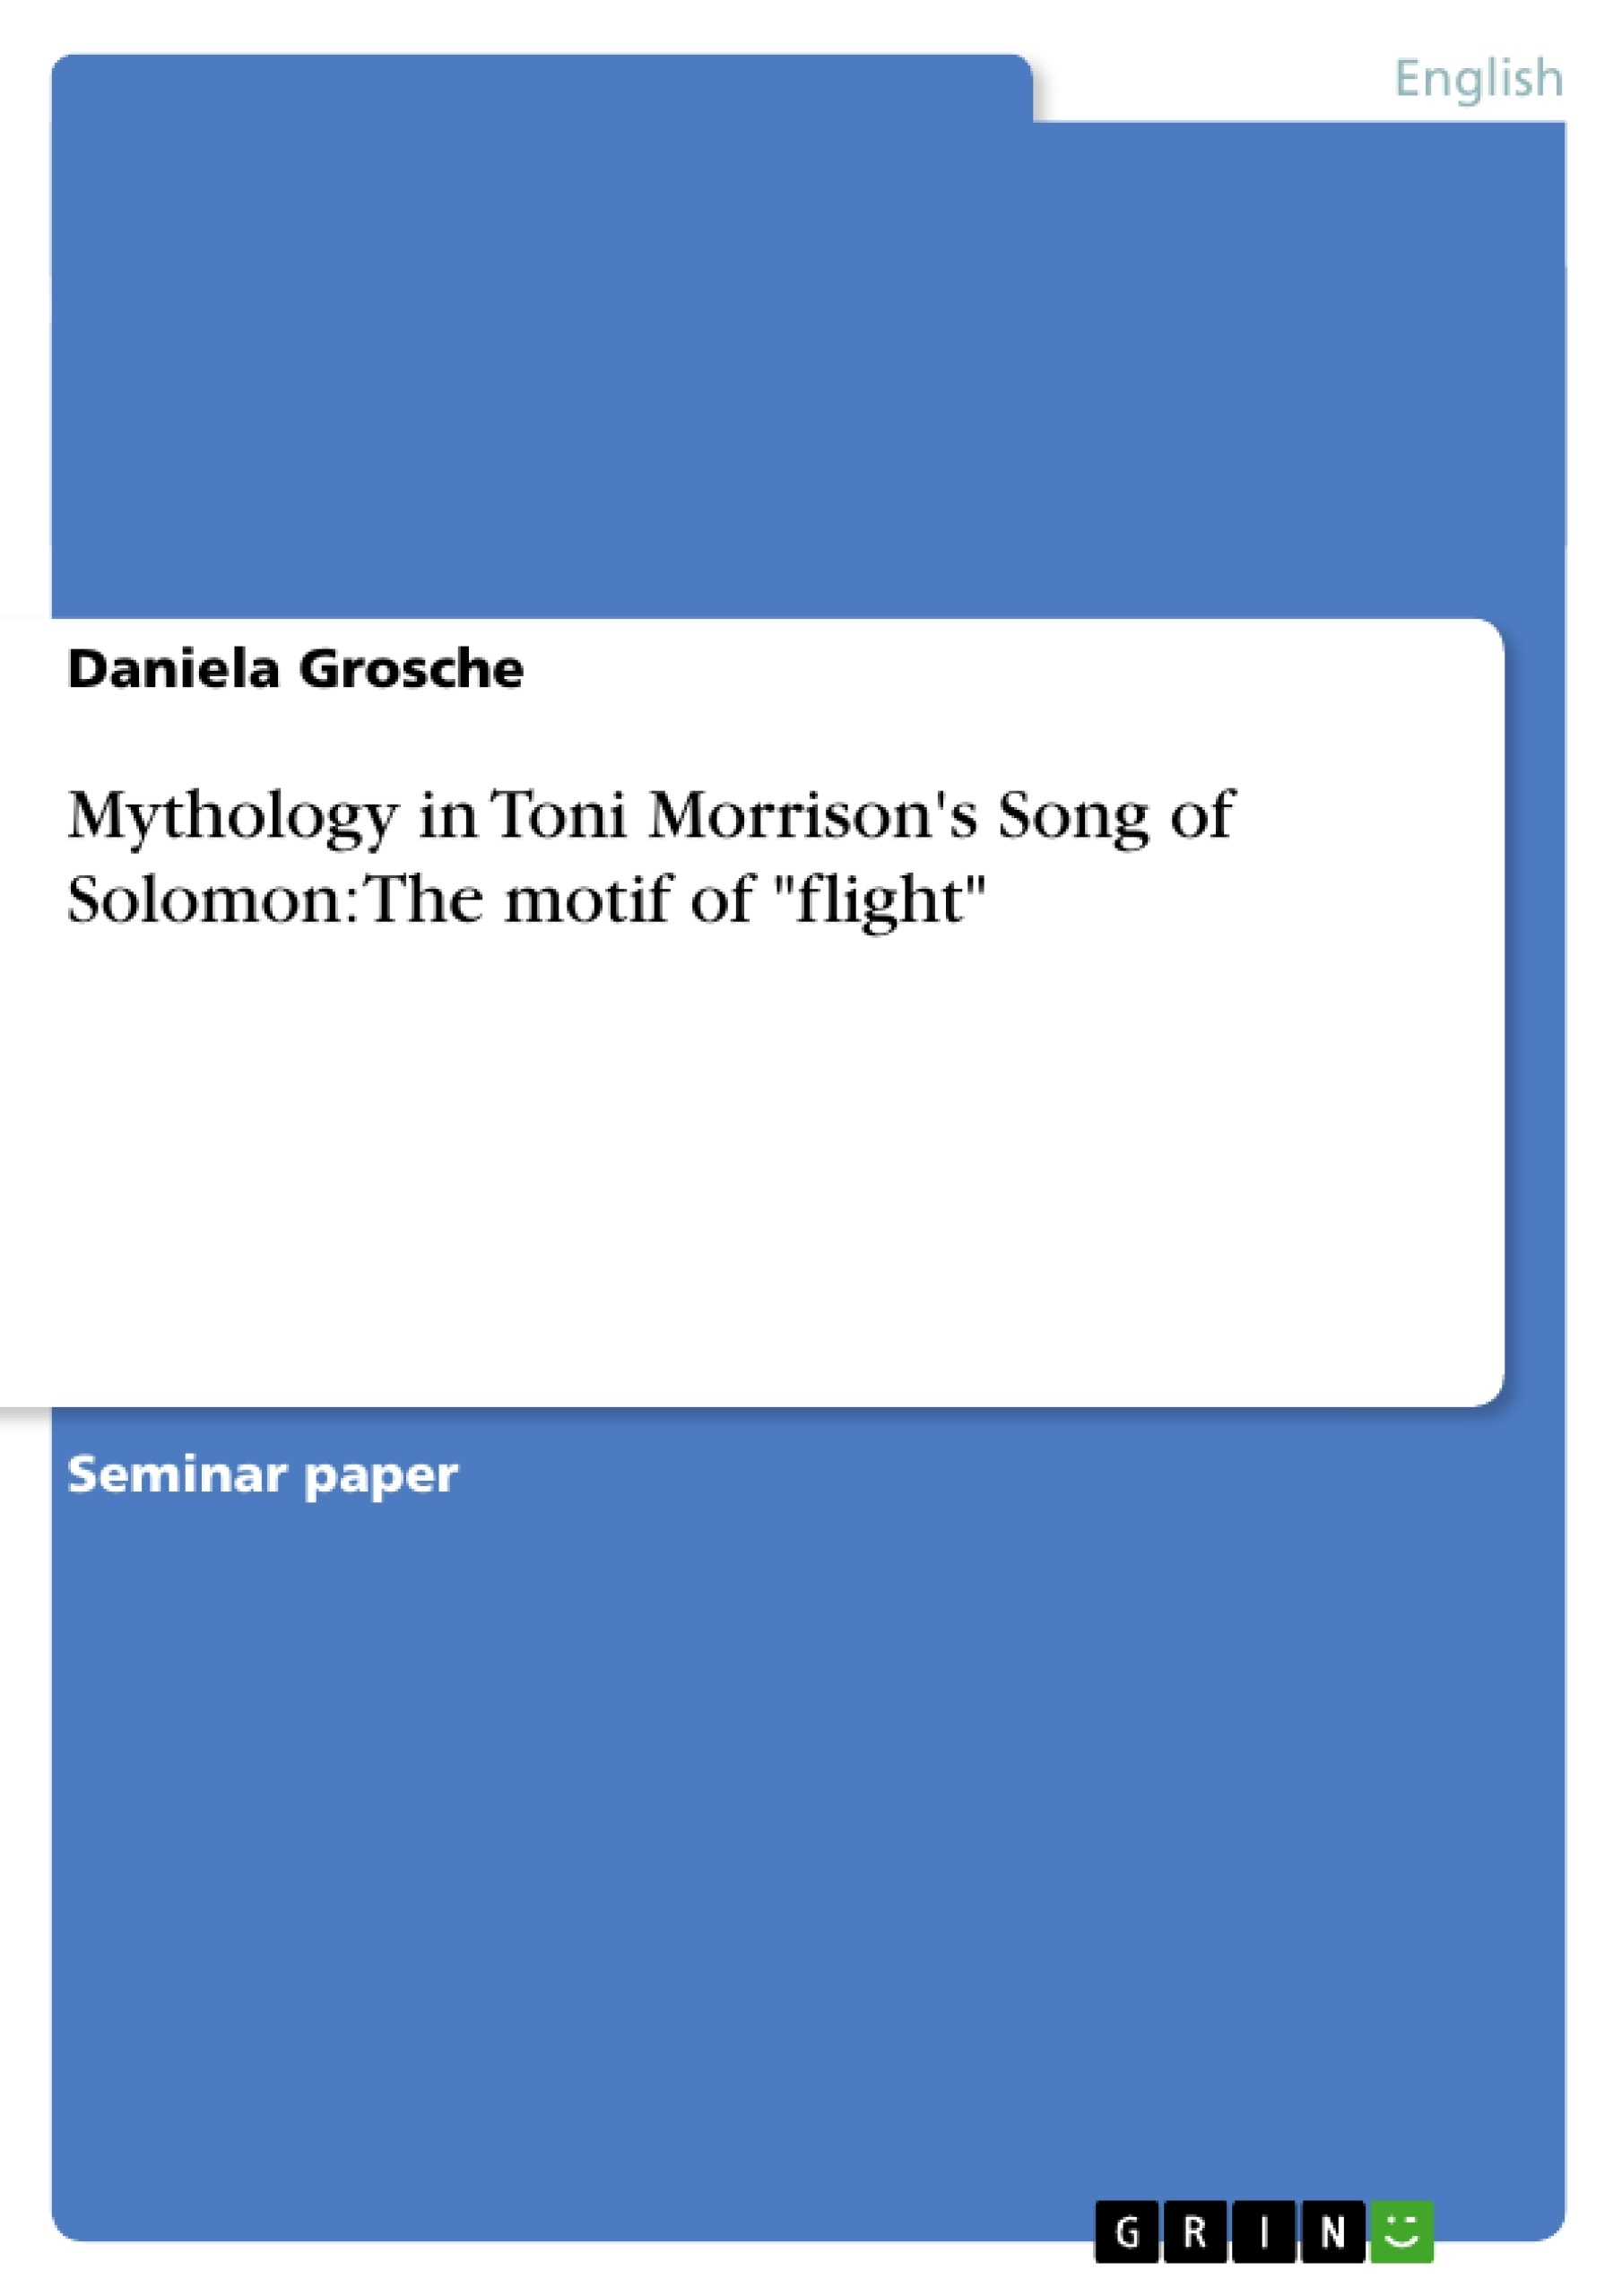 essay on song of solomon by toni morrison